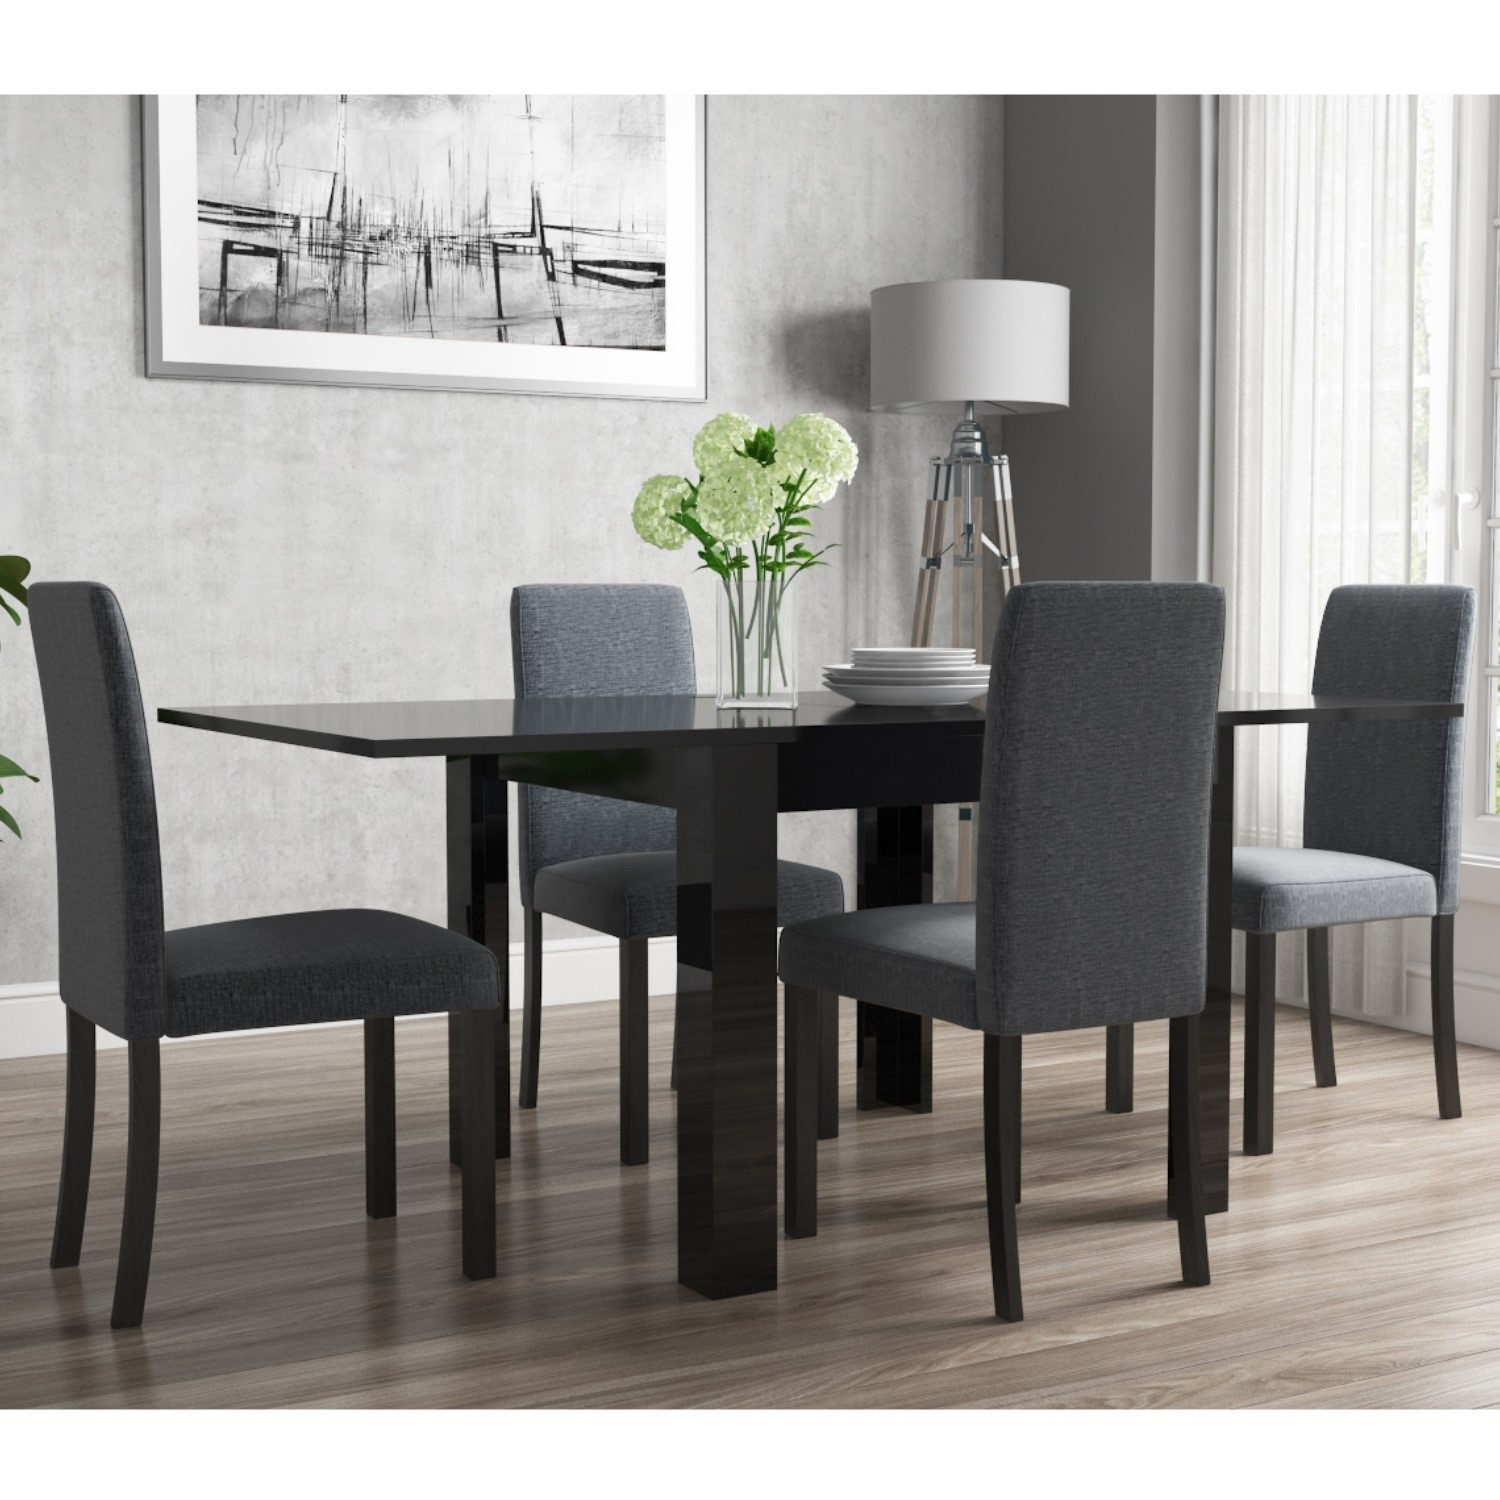 Picture of: Flip Top Dining Table In Black High Gloss With 4 Slate Grey Chairs Vivienne New Haven Furniture123